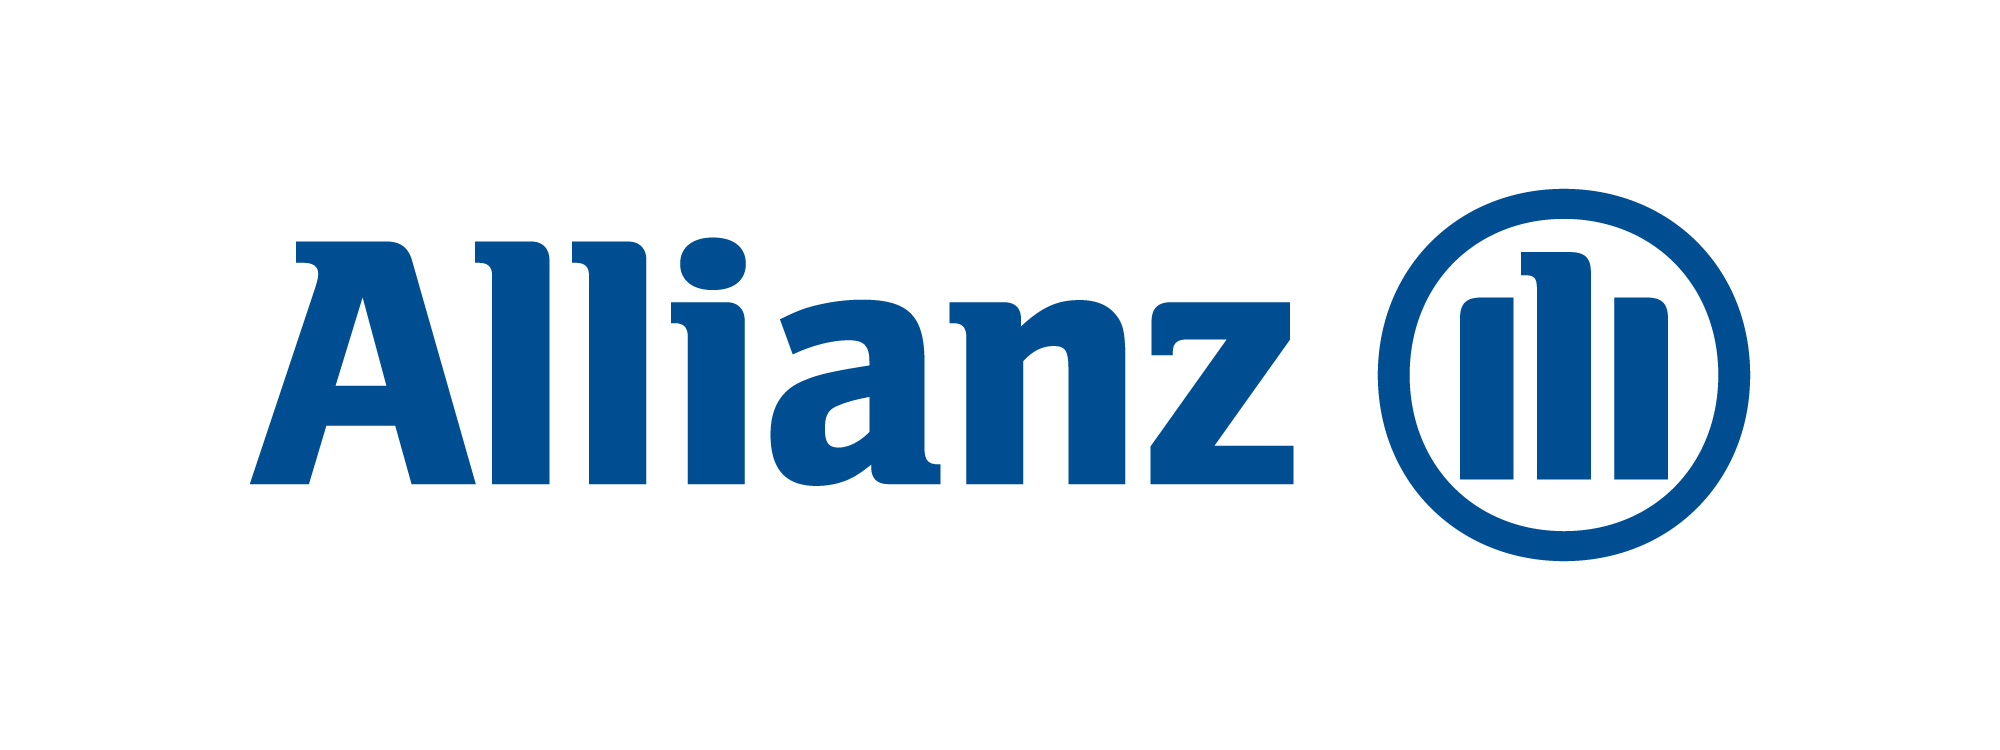 Allianz logotype